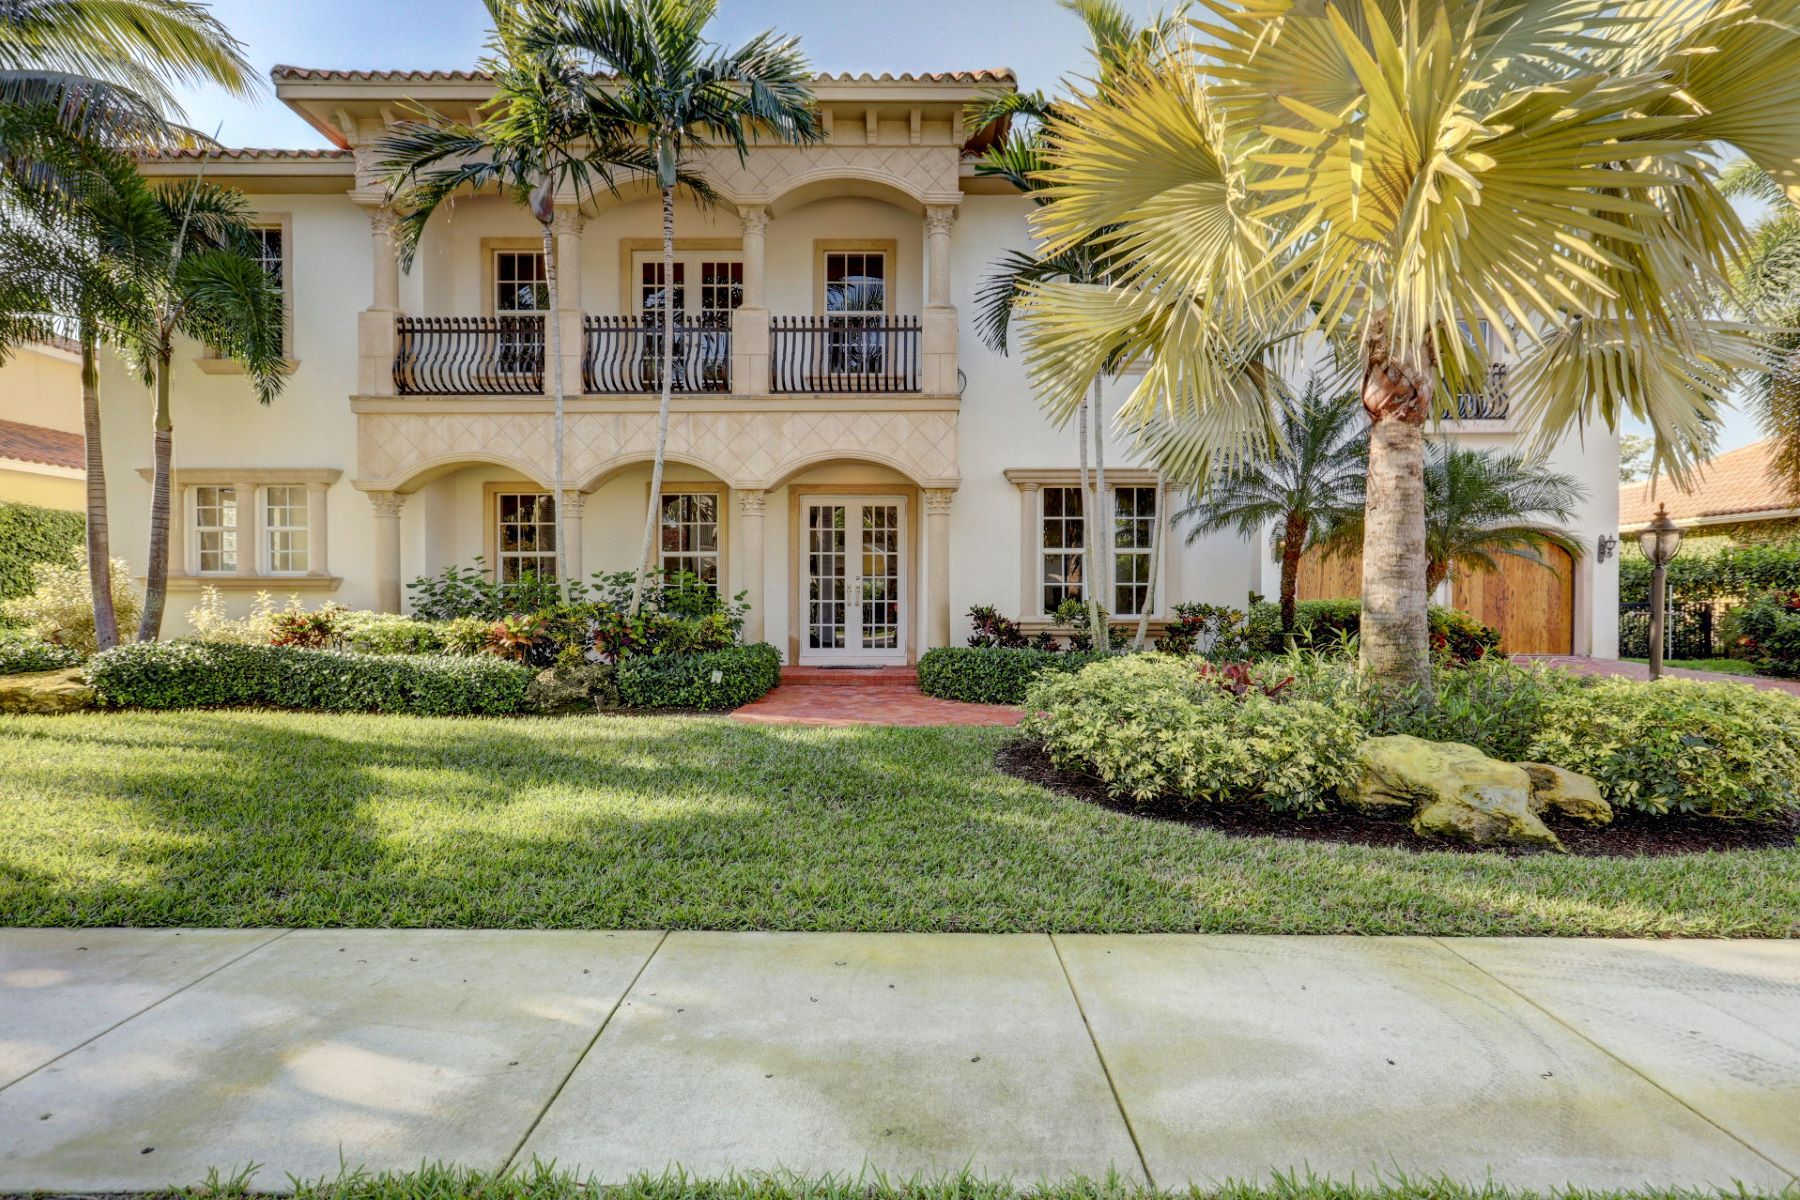 Single Family Homes for Sale at 108 Nativa Circle North Palm Beach, Florida 33410 United States